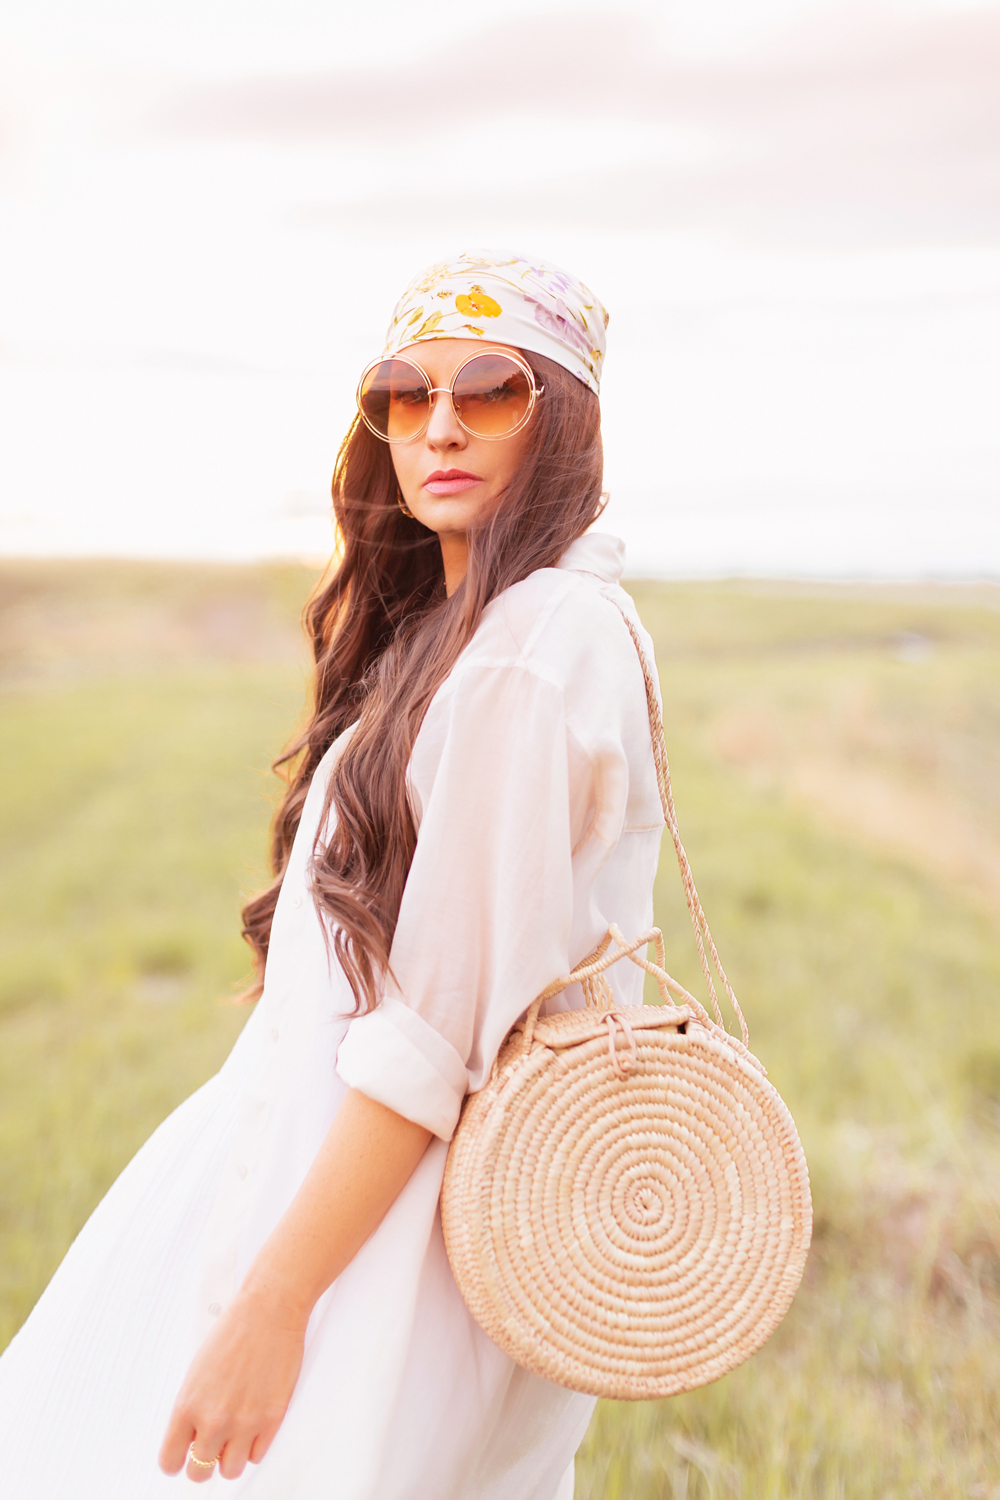 H&M Wildflower Collection Review | Brunette woman wearing a H&M A Meadow of Wildflowers Collection Patterned Satin Scarf on her head with flowy white cotton dress, airy button down shirt, natural material bag and oversized sunglasses in a field at sunset | H&M Wildflower Collection Canada | H&M Wildflower Collection Canada | Spring/Summer 2021 Trends | The Best Cotton Dresses 2021 | Boho Spring / Summer Outfit Ideas | Calgary Creative Lifestyle & Fashion Blogger // JustineCelina.com